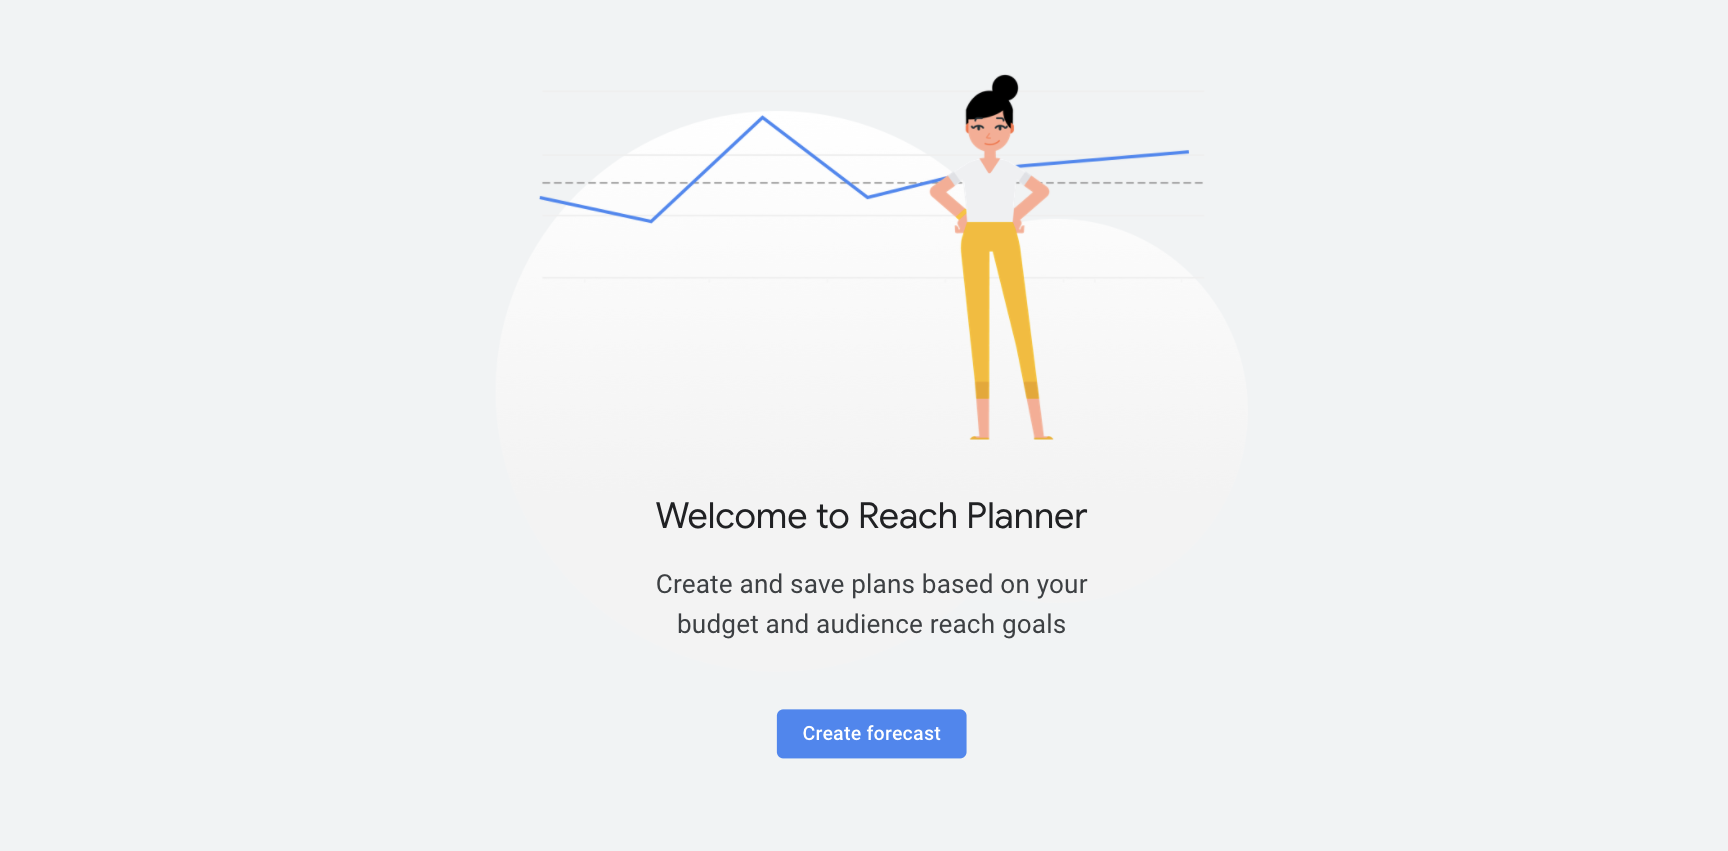 reach planner by Foretoday